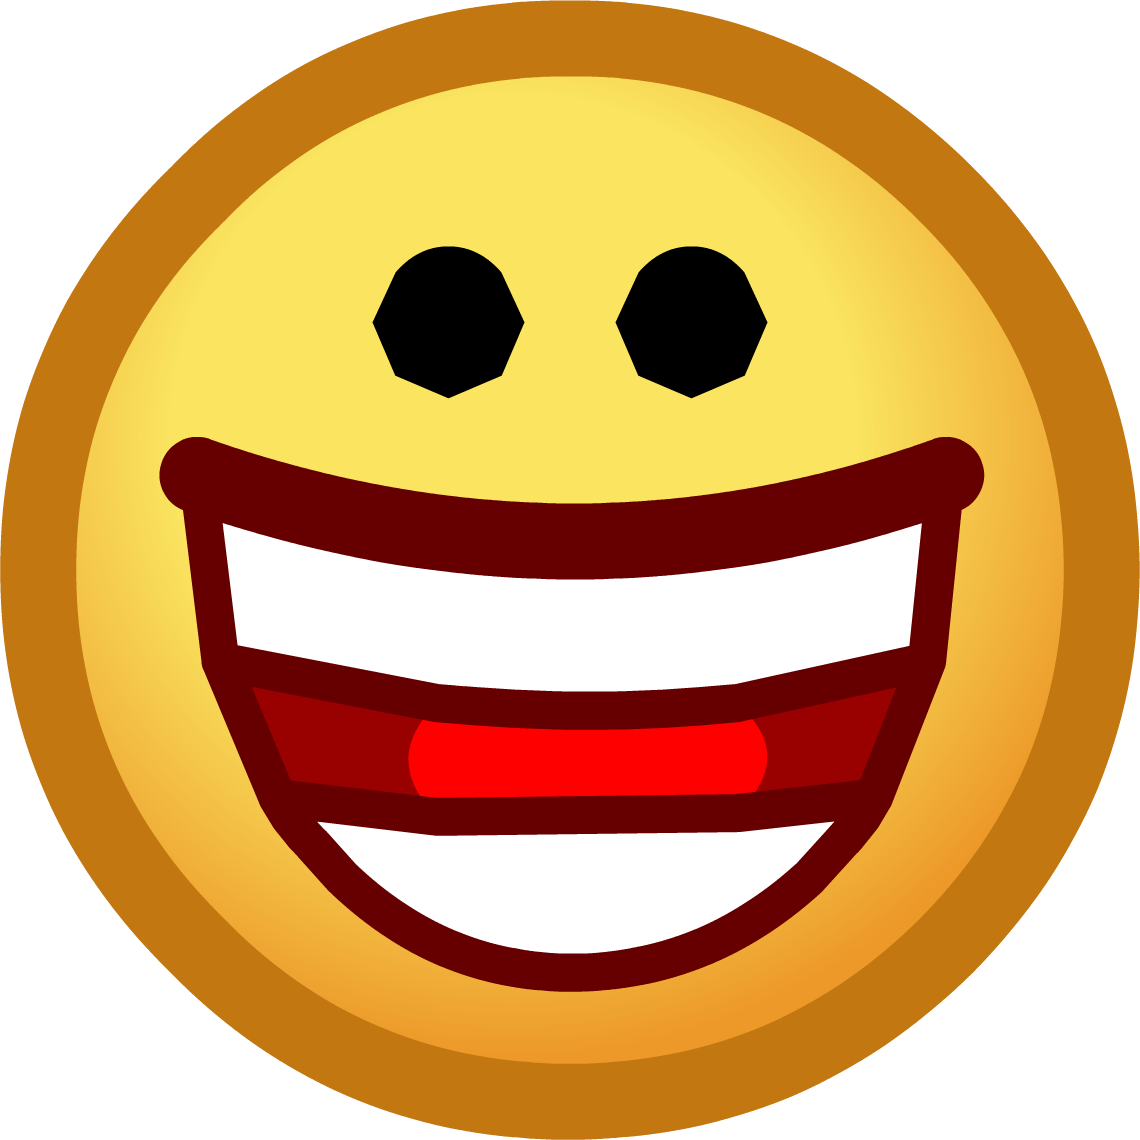 Worm clipart pathetic. Laughing smiley face emoticon